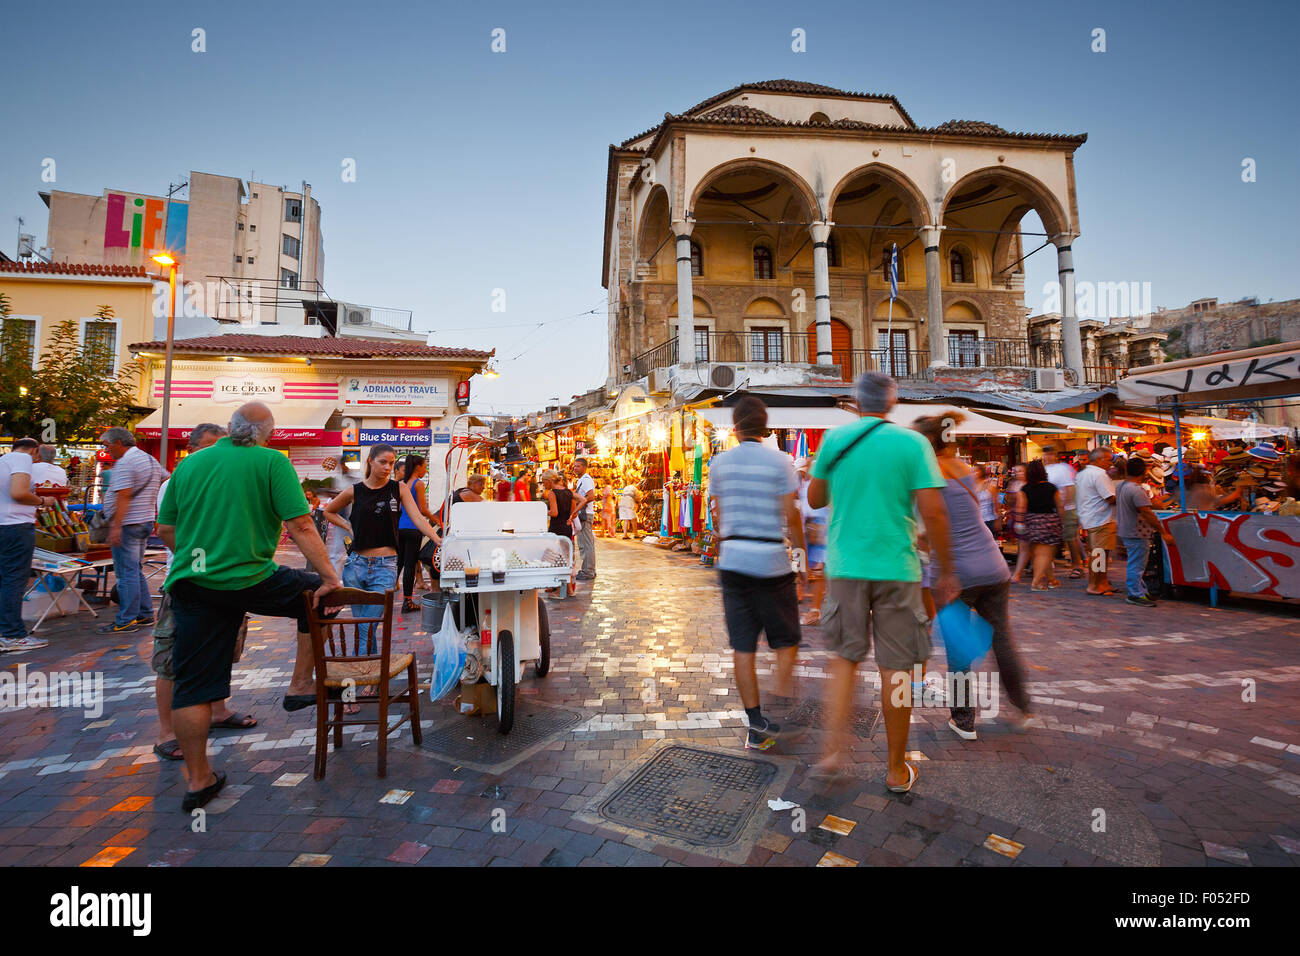 Sweets sellers and tourists in front of the mosque in Monastiraki square - Stock Image